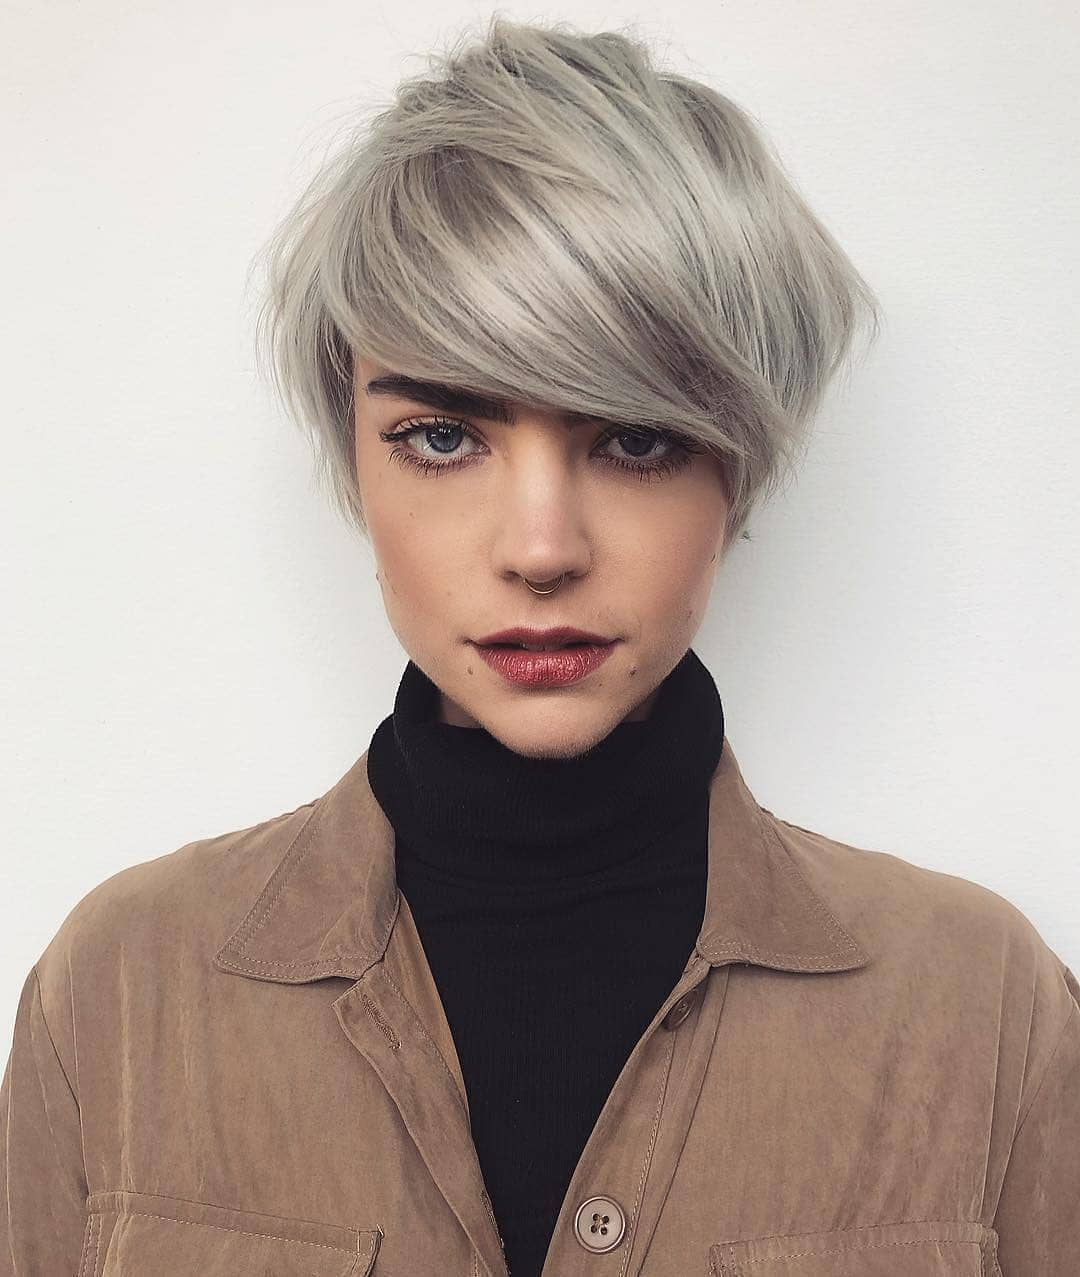 10 Trendy Short Hairstyles for Straight Hair - Pixie Haircut for Female 2020